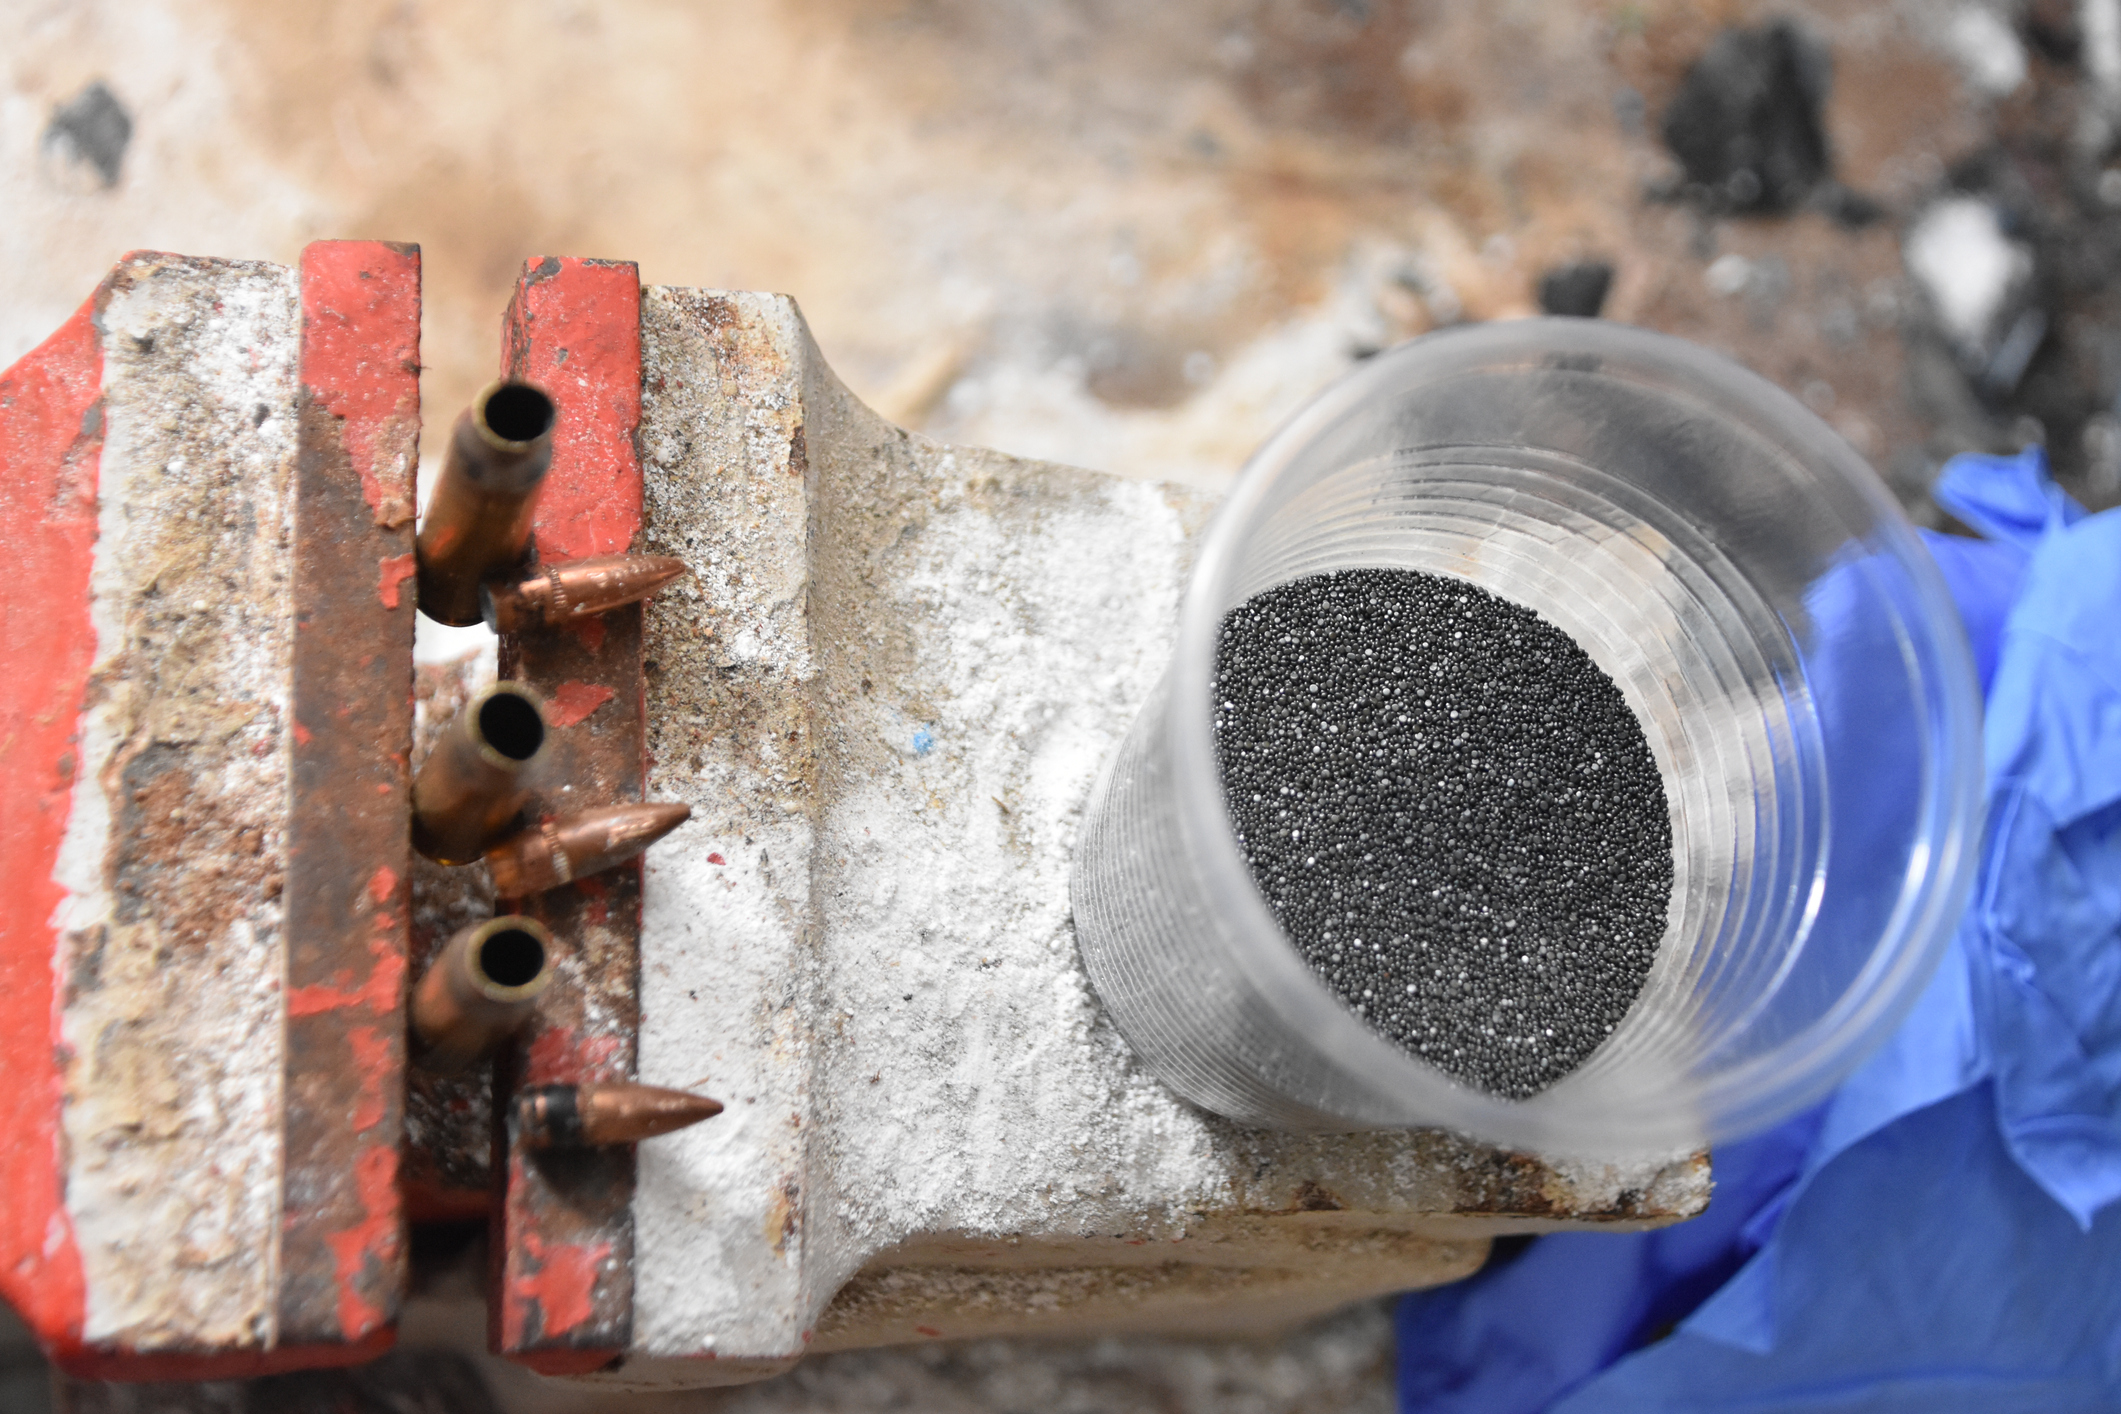 How to make your own black powder